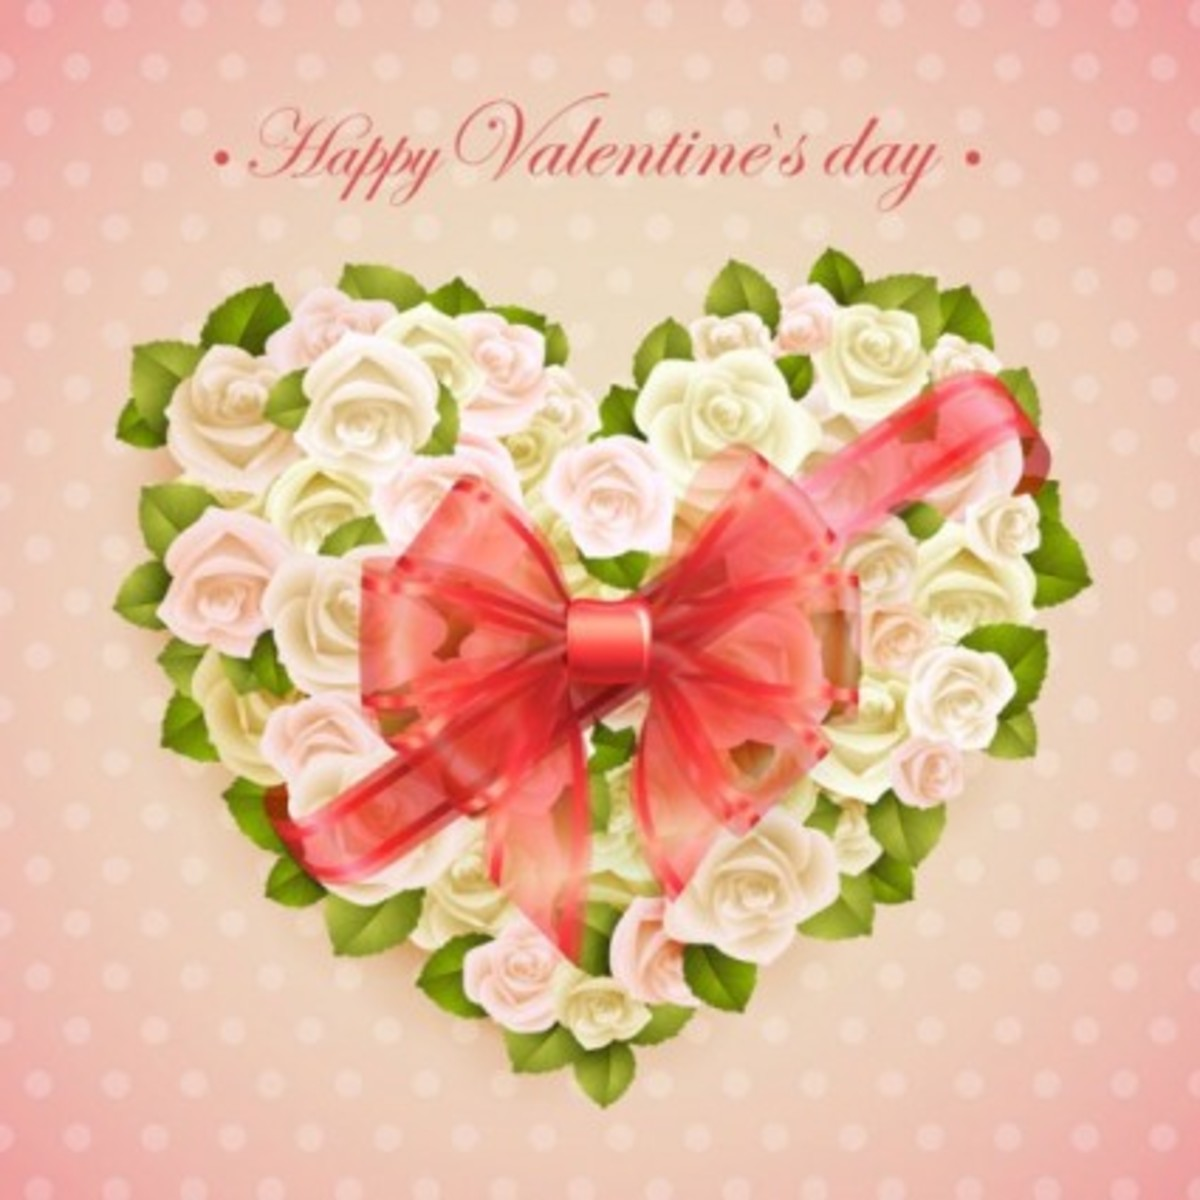 Happy Valentine's Day with Roses Wreathe